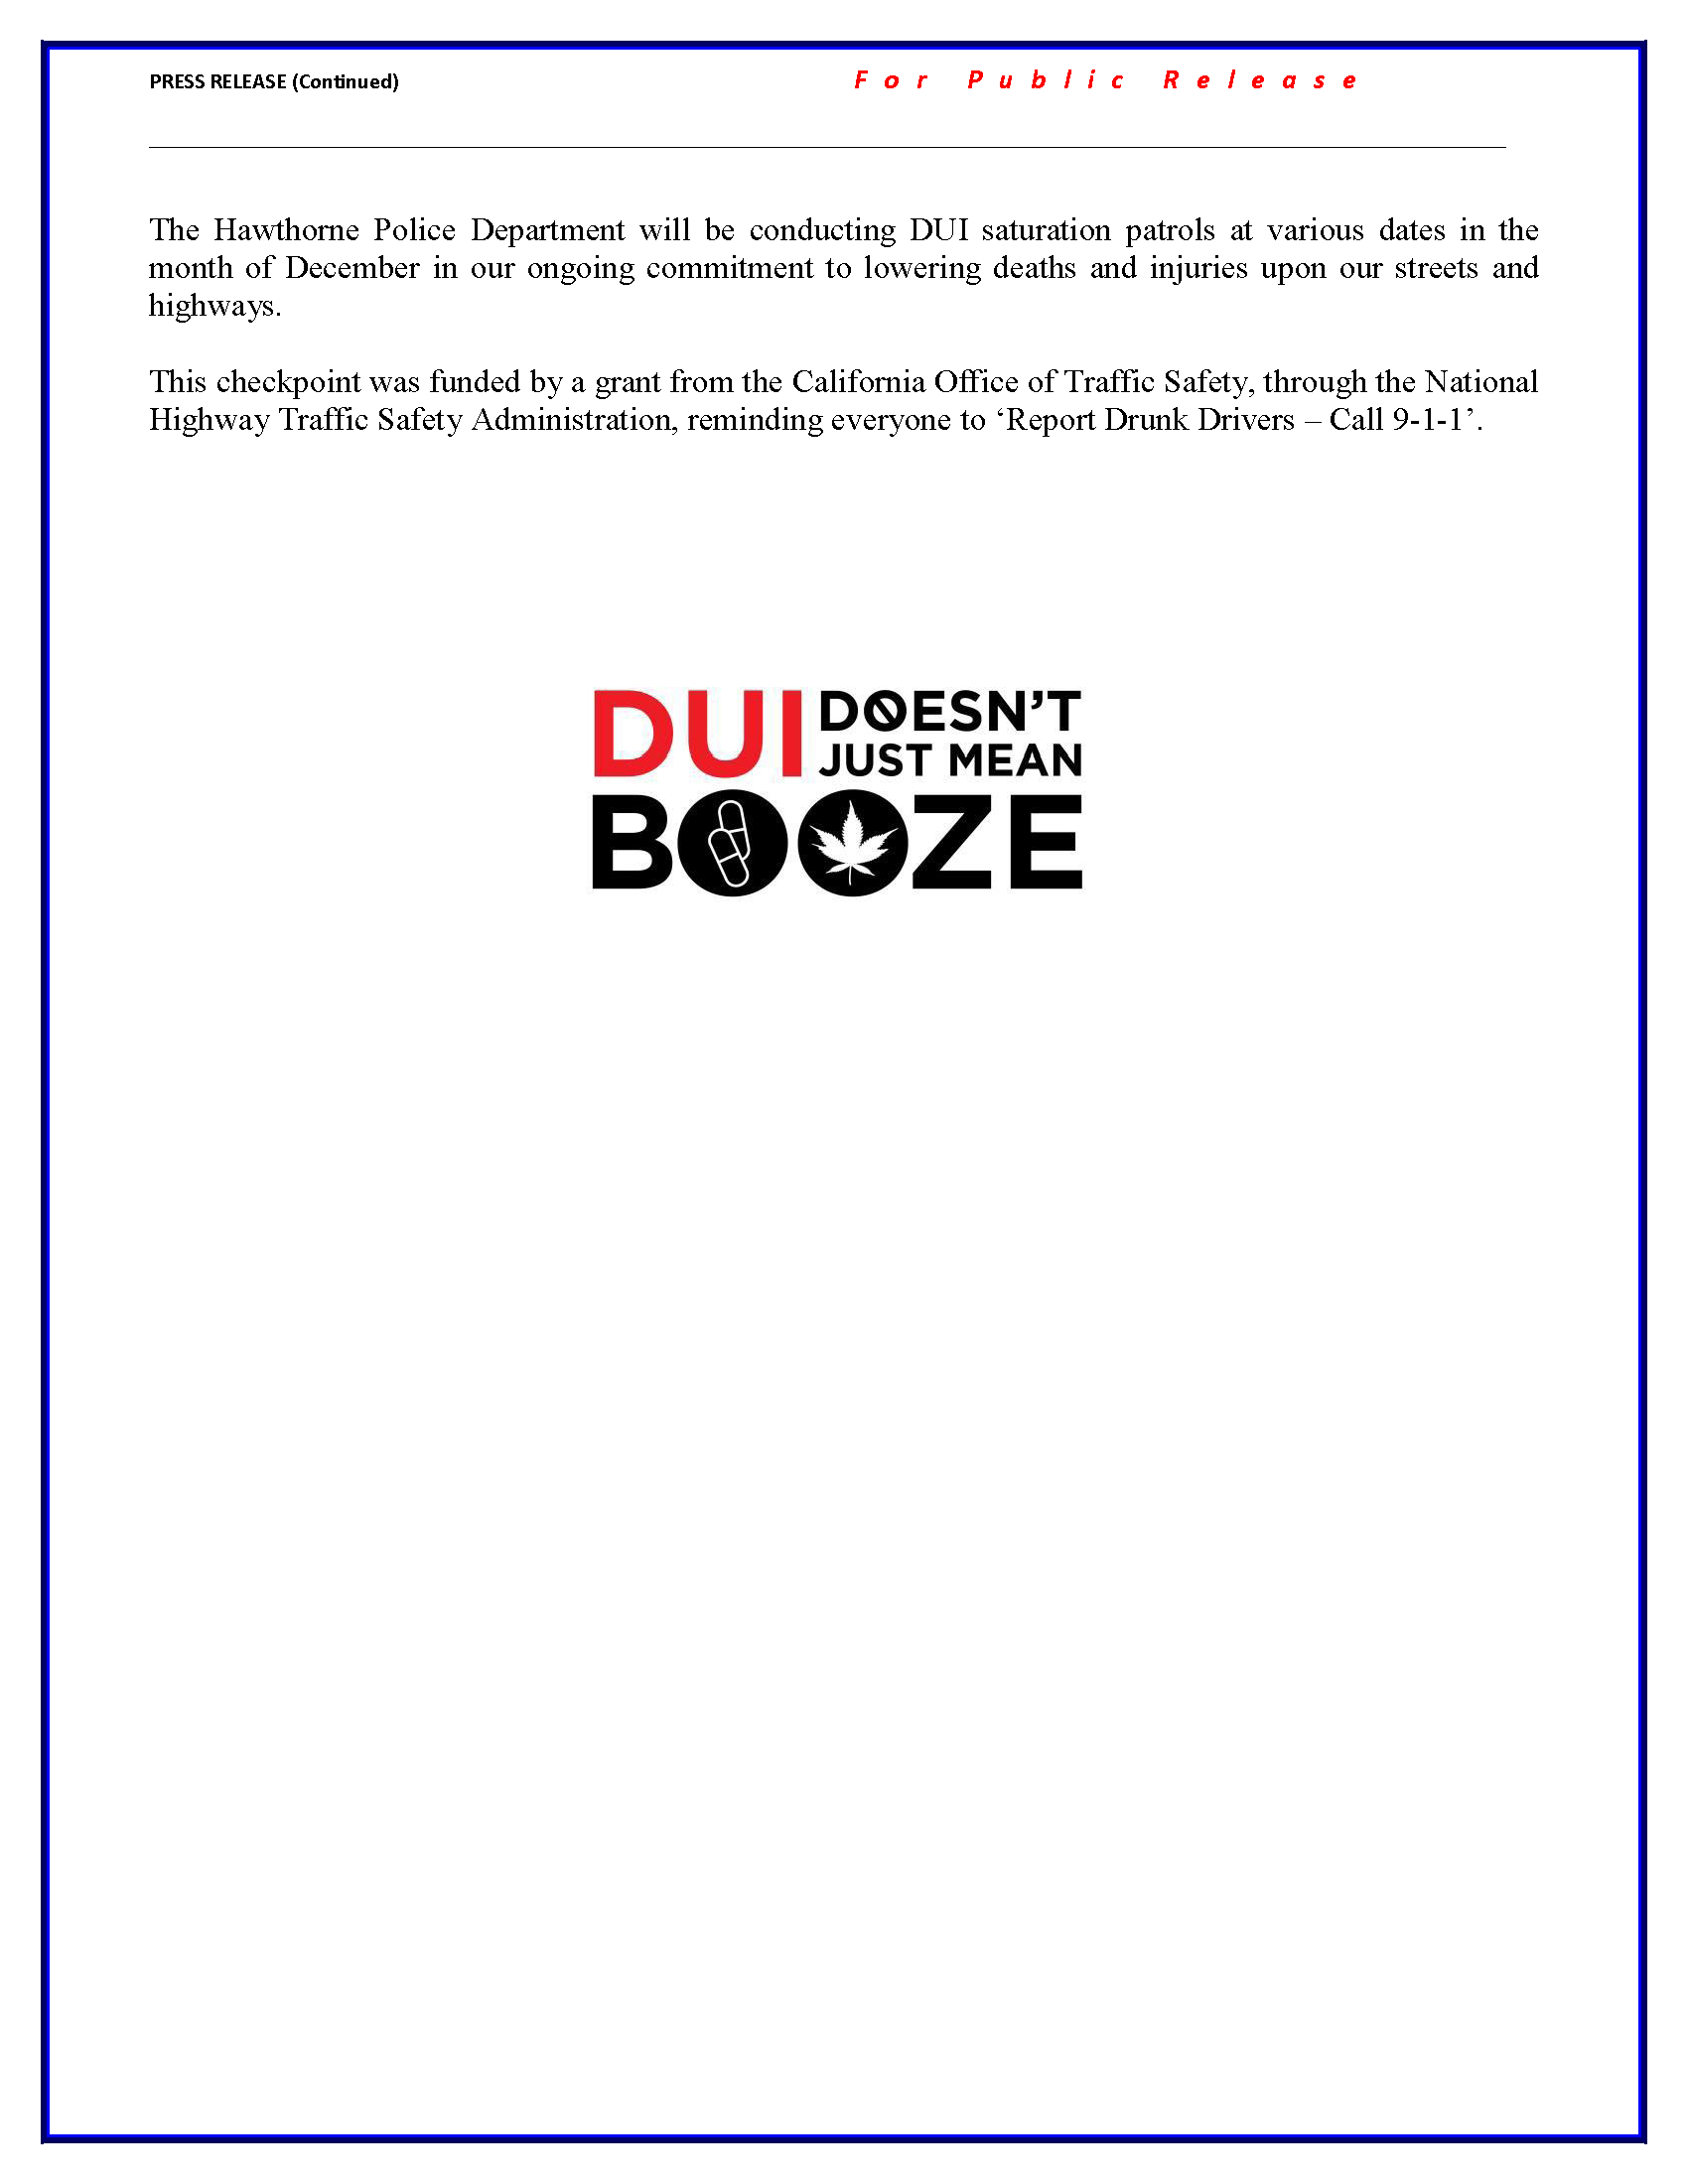 DUI - CDL CHKPOINT RESULTS PRESS RELEASE 003-23-18_Page_2.png